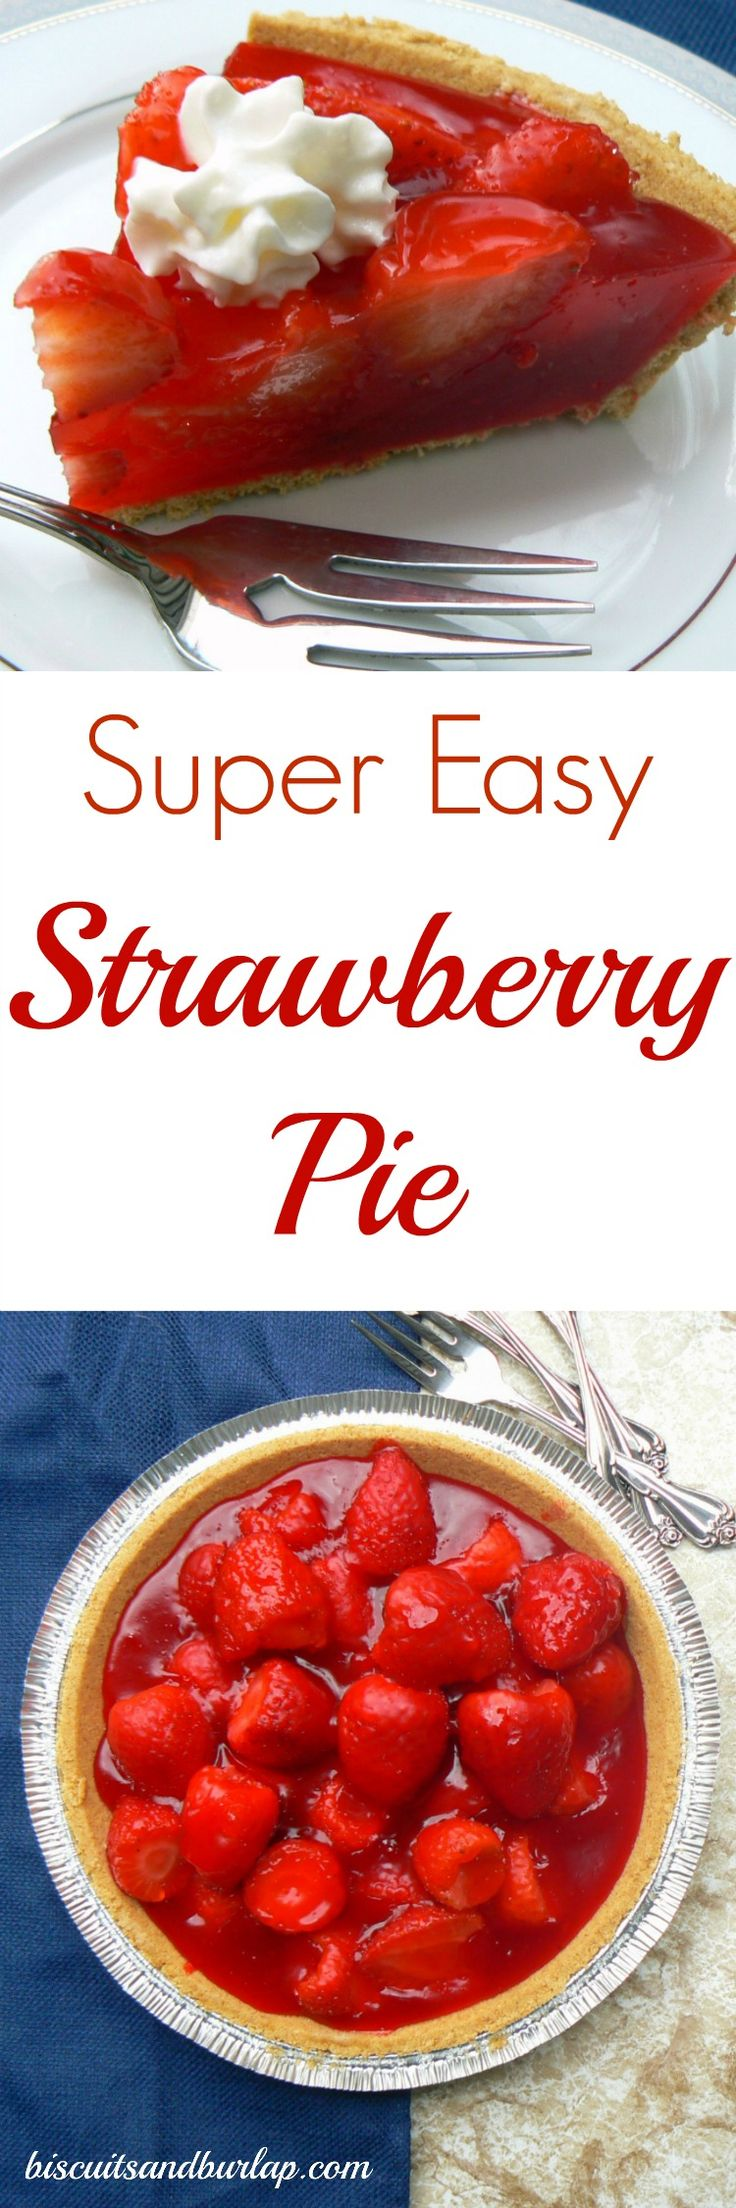 This no-bake strawberry pie would be the perfect dessert for Easter!